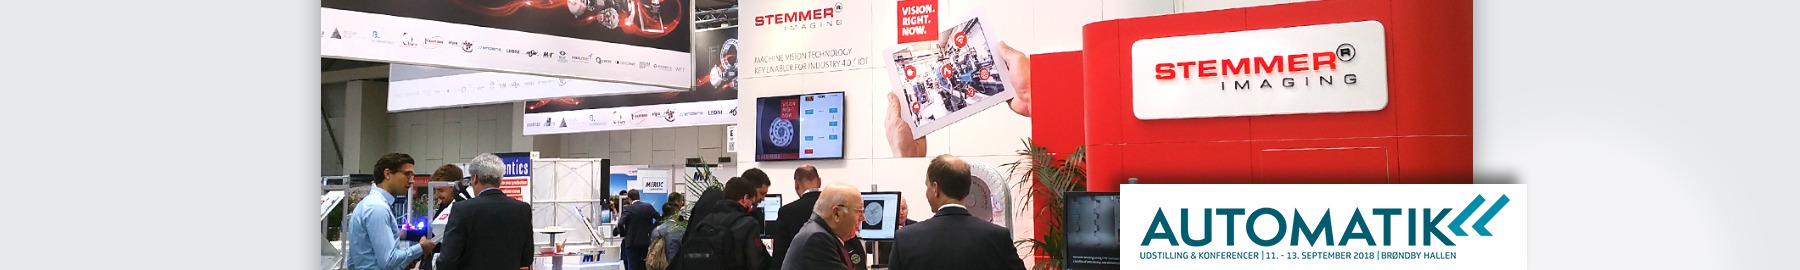 Meet your local STEMMER IMAGING experts at Automatik.